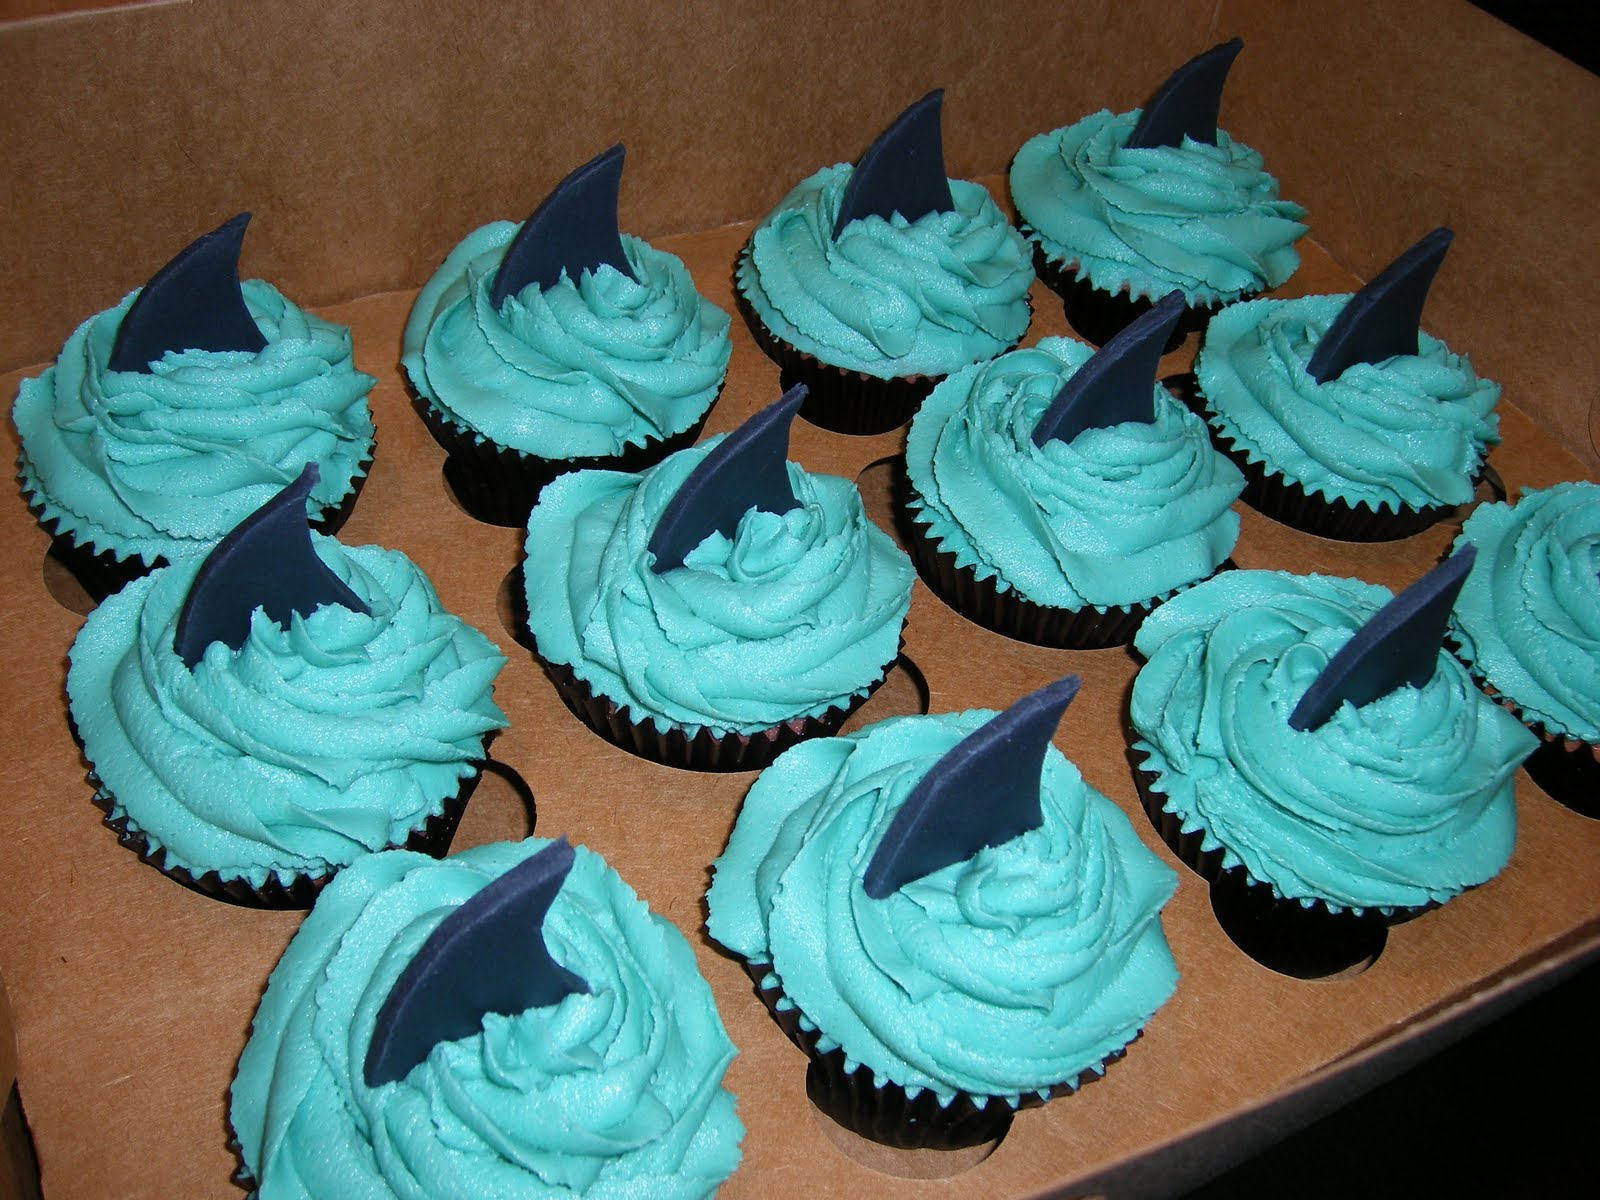 Cute Cupcakes For Boys Birthday http://katrinakaiffan.org/wp-content/birthday-cupcakes-boys